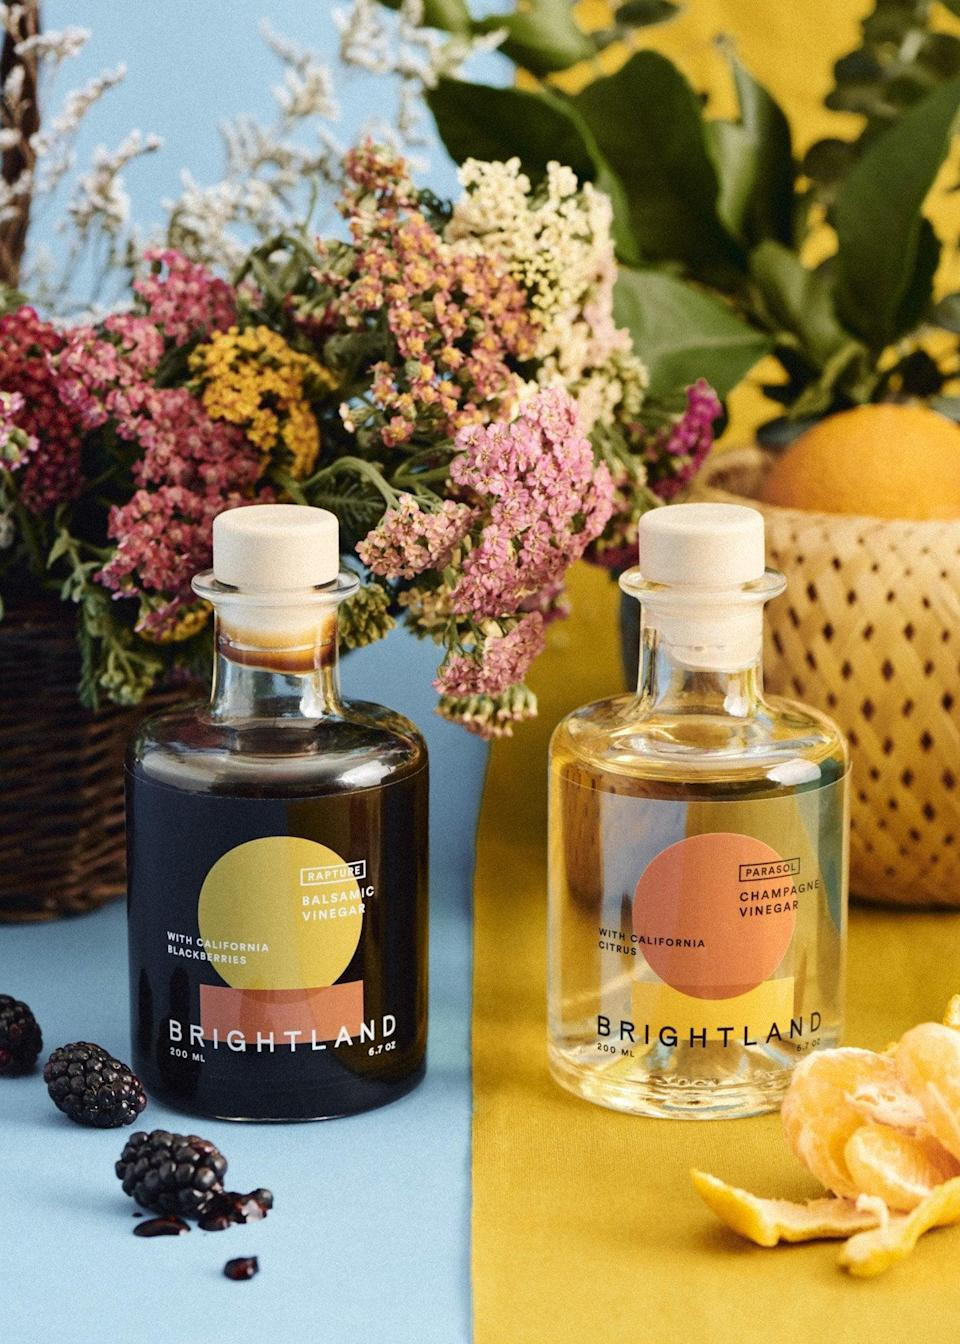 <p>We love the brand's popular olive oil set, and now we'll be needing to try the <span>Brightland The Pair Set</span> ($44). The vinegar duo pair is made in California, and each bottle has its own unique flavor and tasting notes.</p>